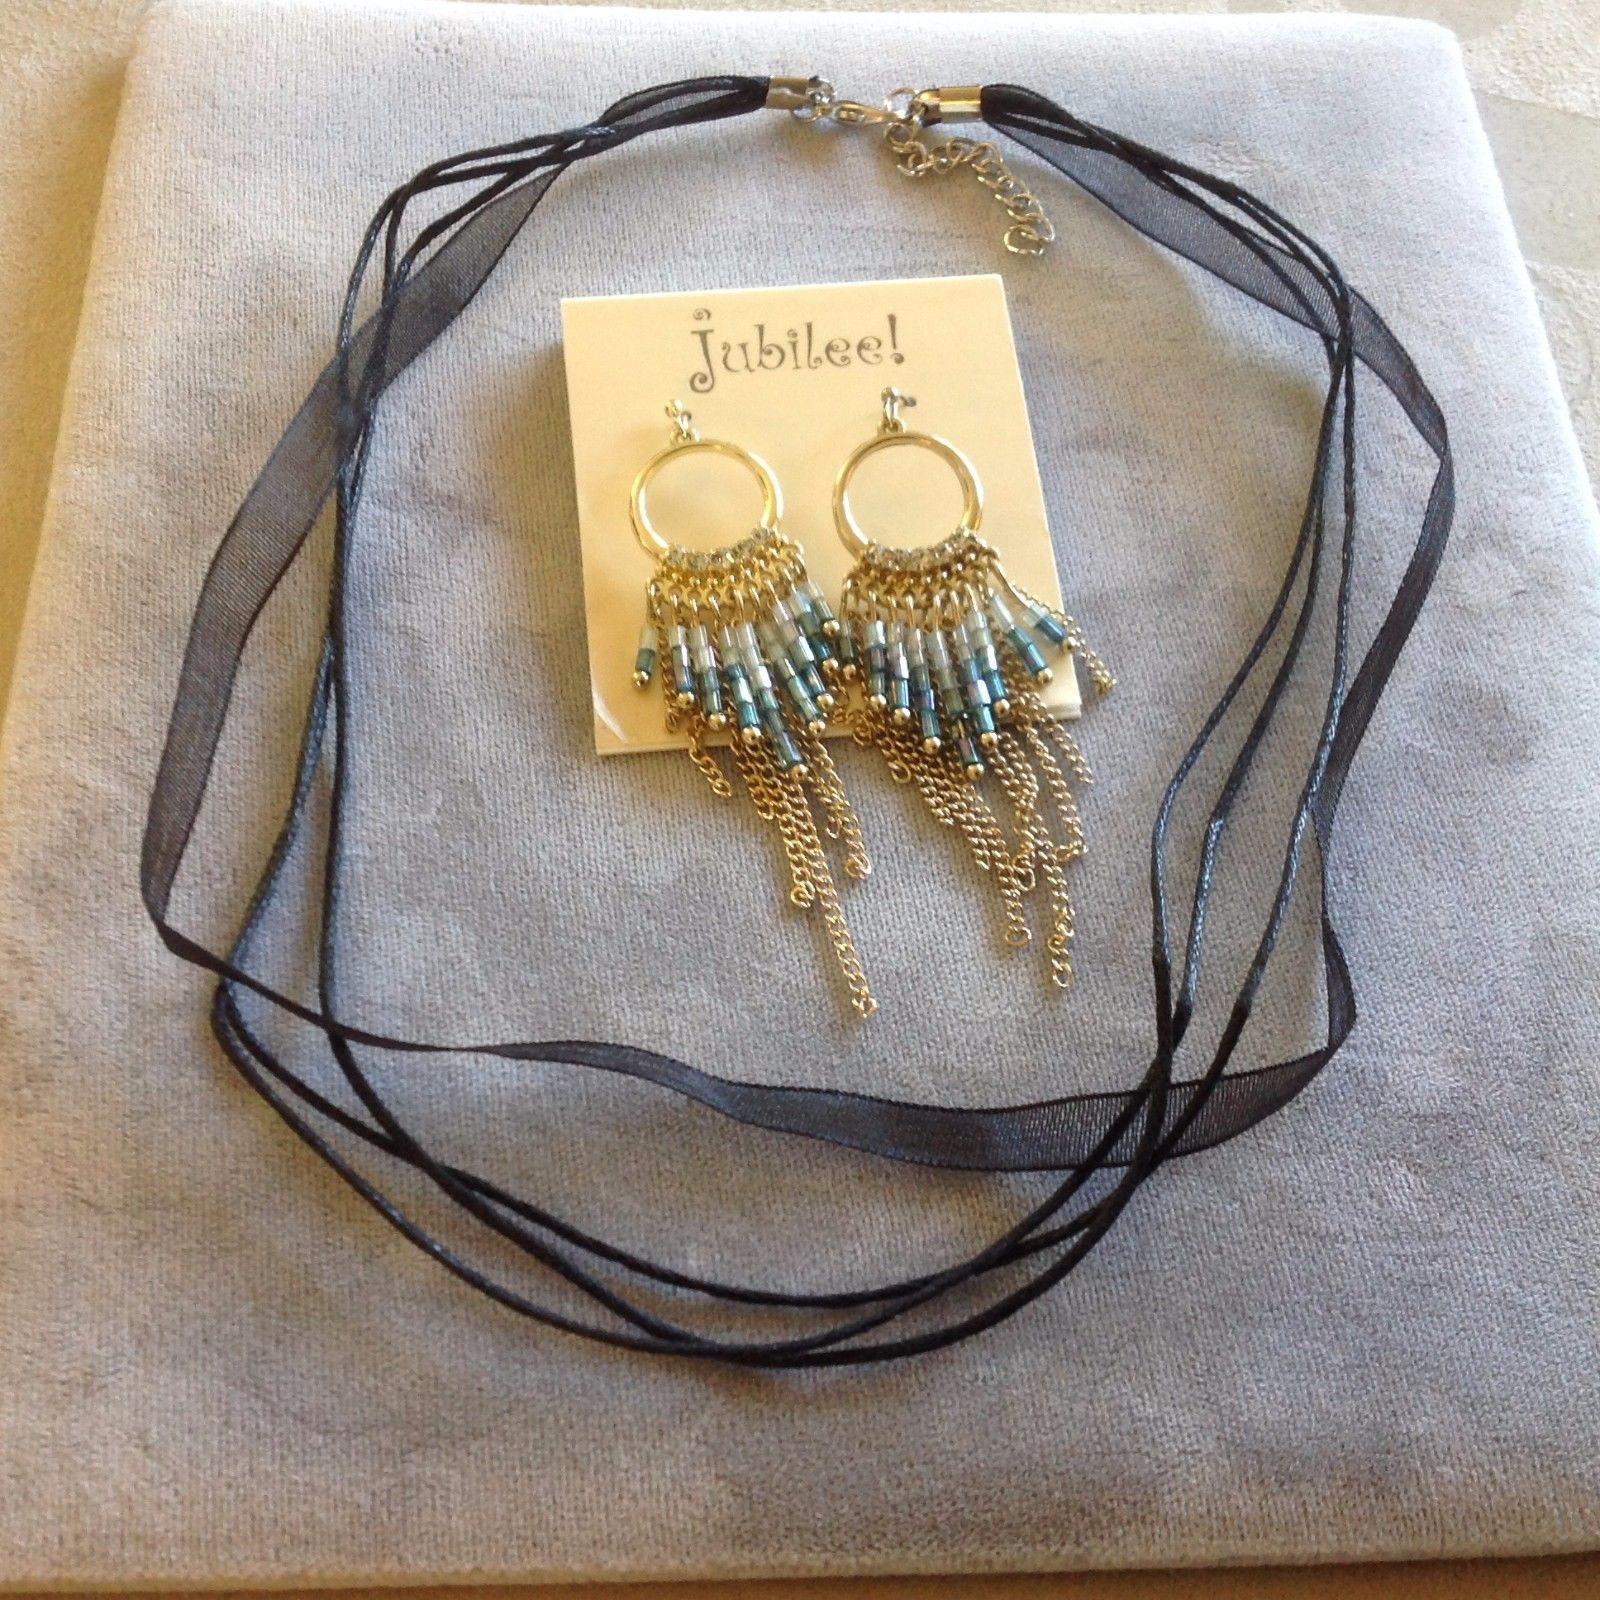 New Cloth and String Black Necklace and Jubilee! Gold Toned Earrings Blue Bead